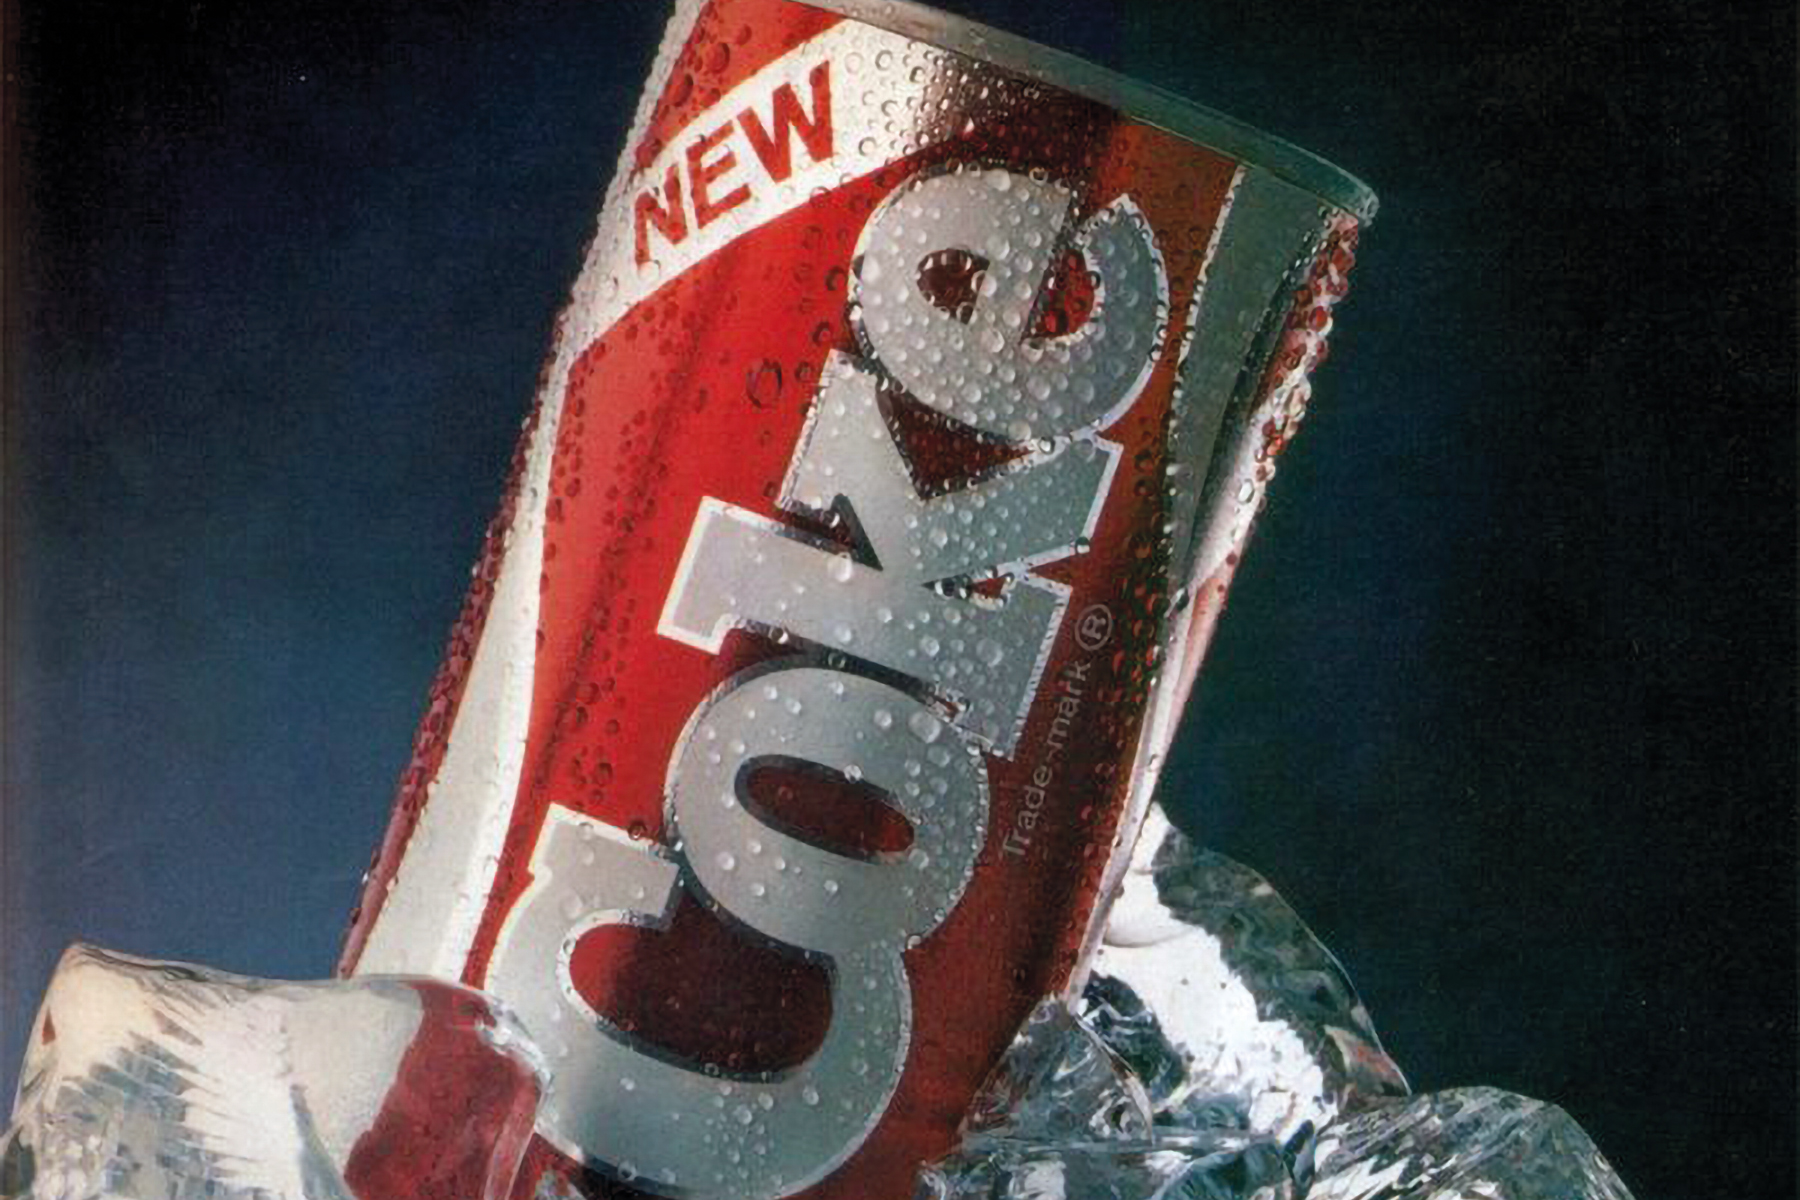 New Coke pops... 34 years later